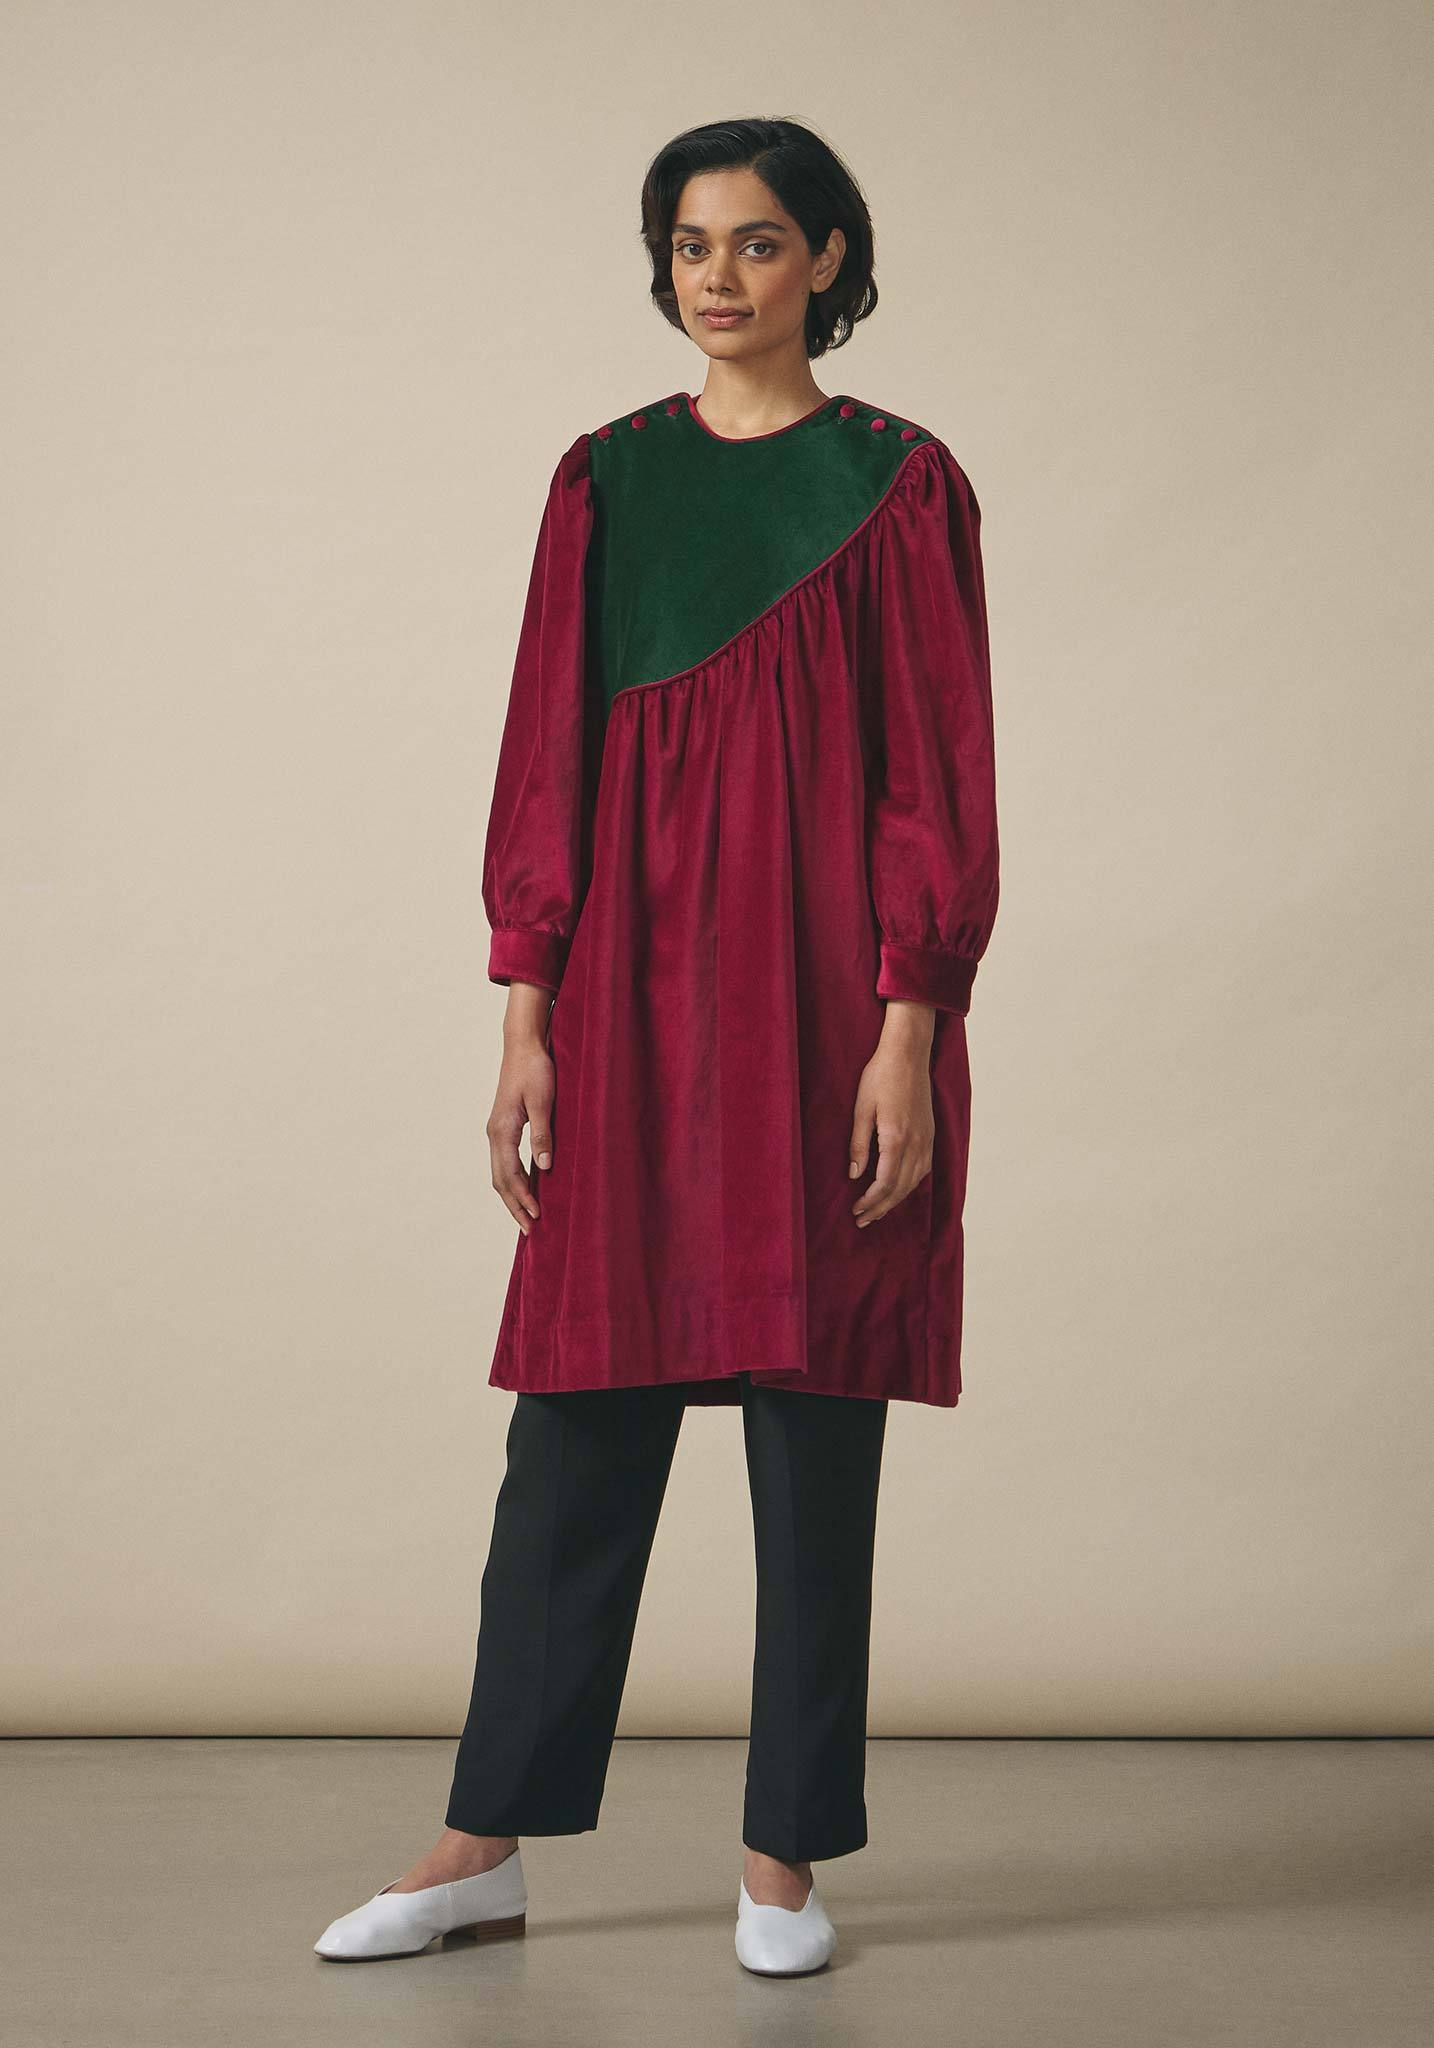 Batsheva, Cabernet Velvet Shift Dress